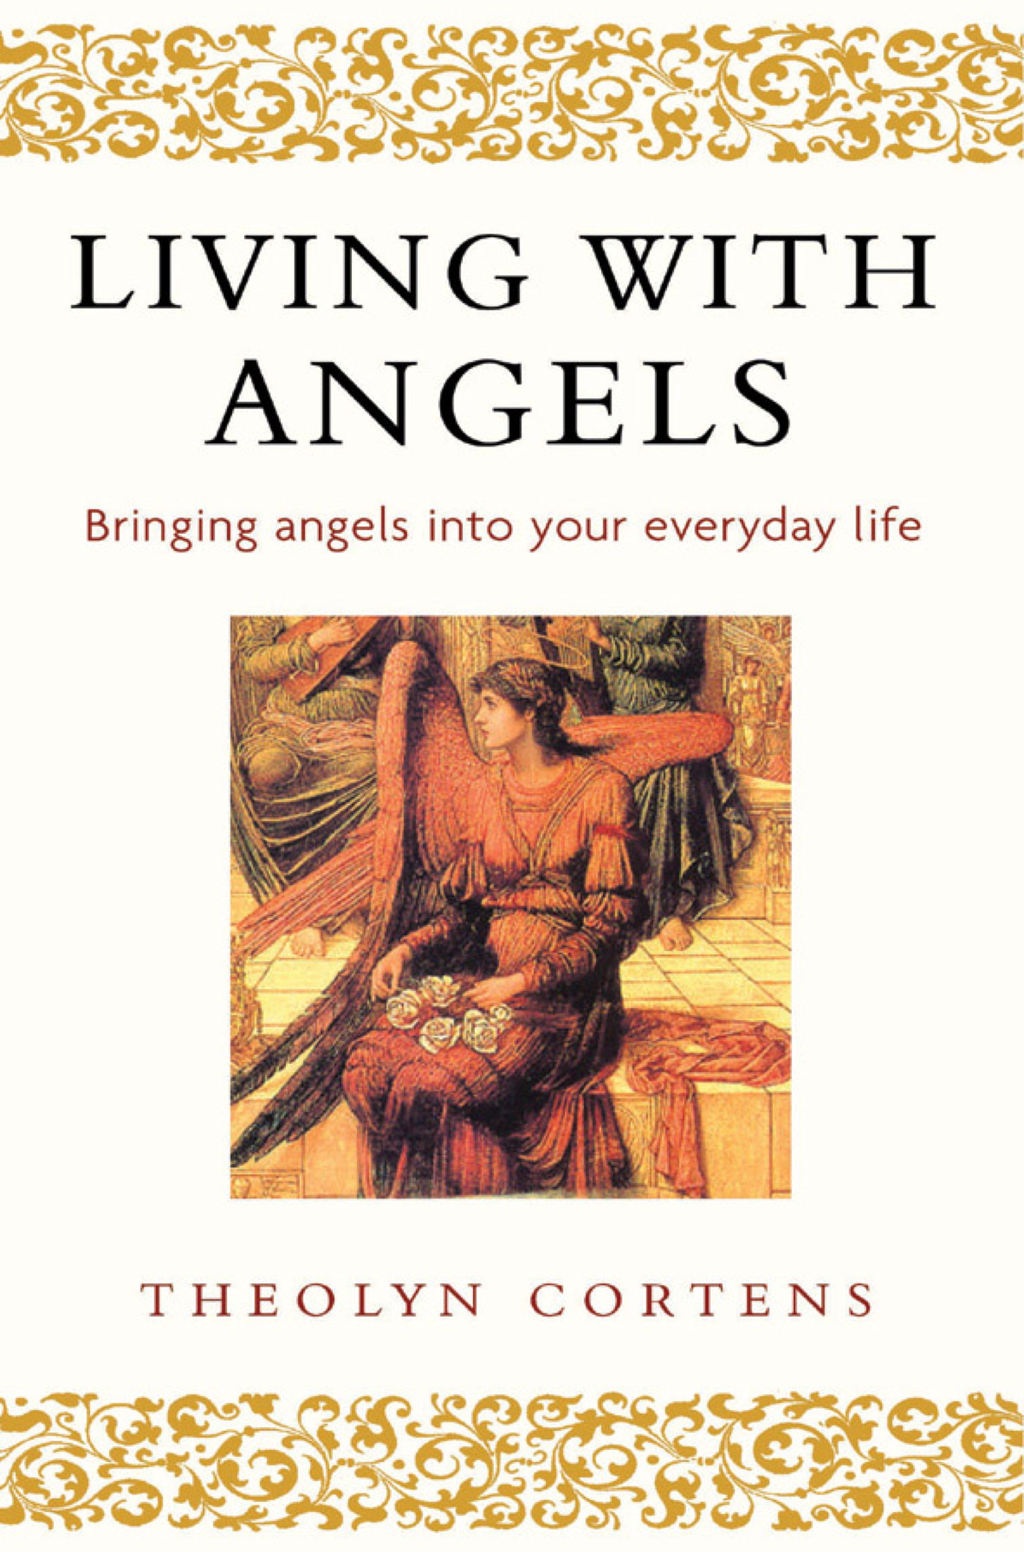 Living With Angels Bringing angels into your everyday life